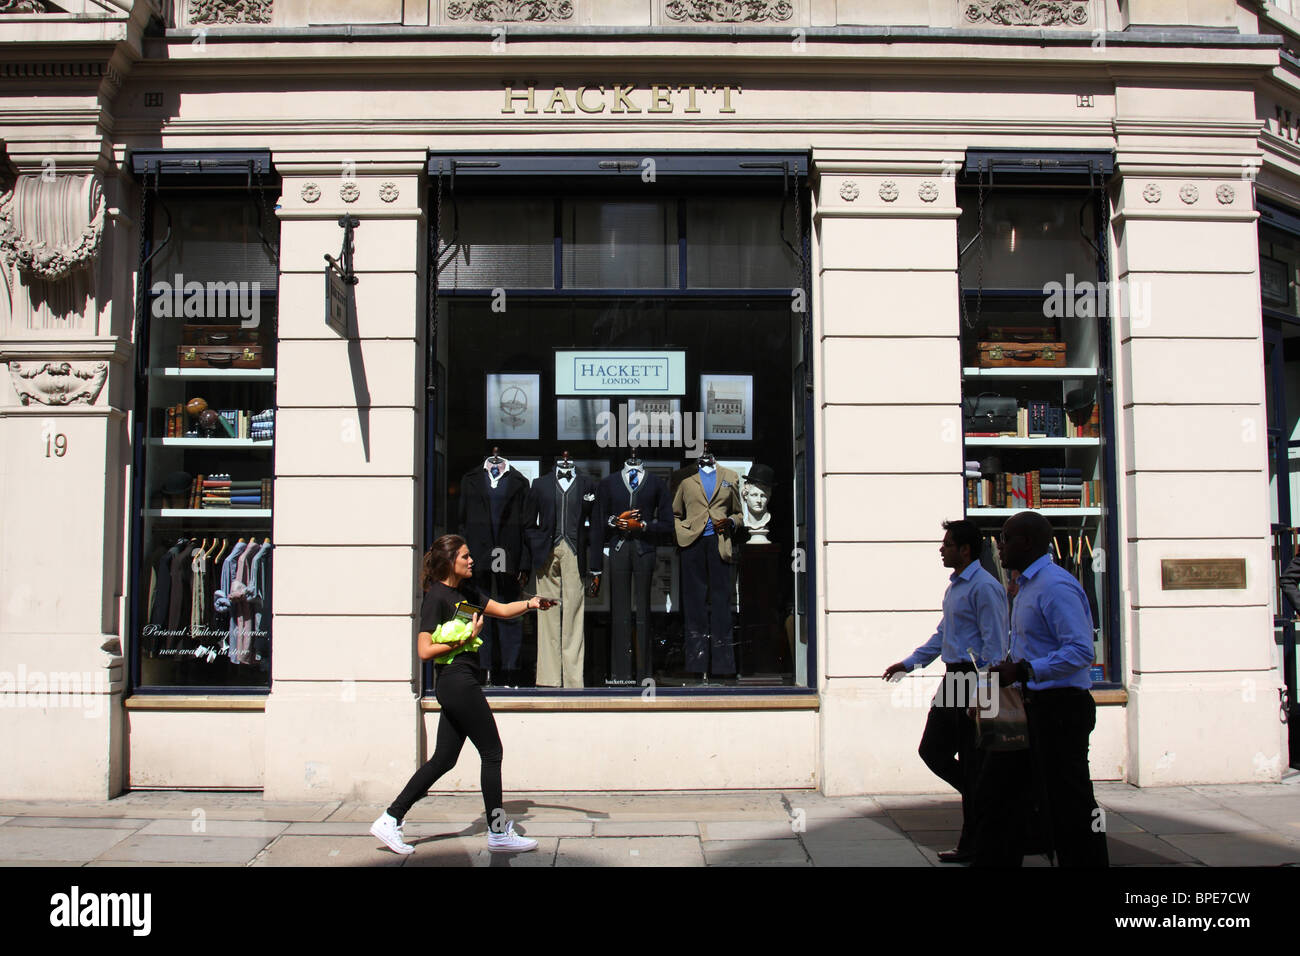 A Hackett designer clothing store in the City of London. - Stock Image